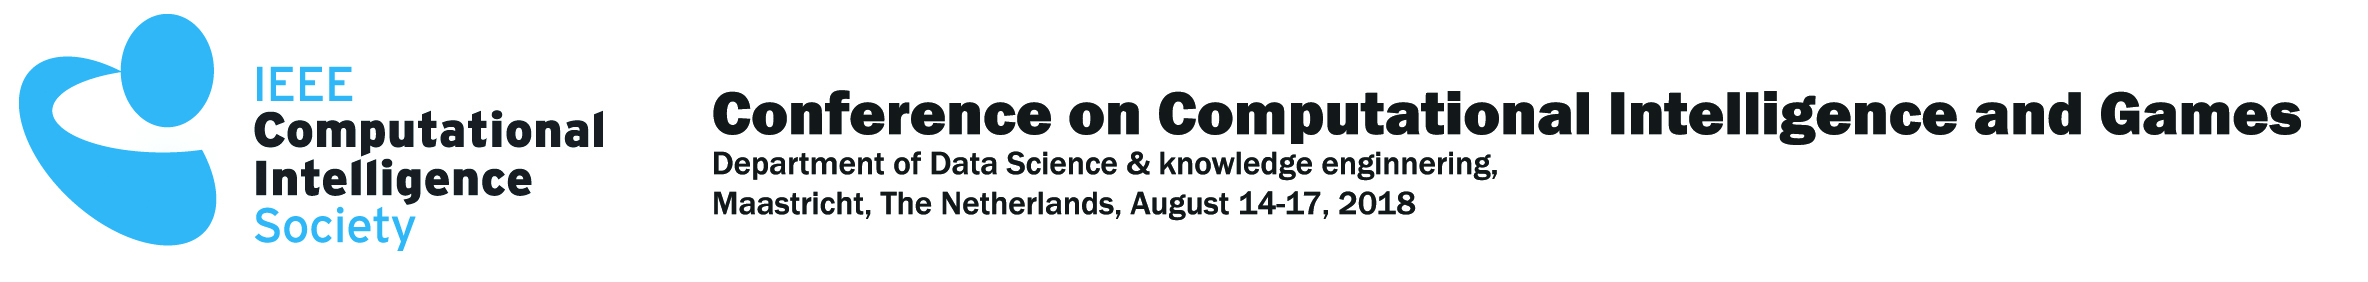 IEEE Conference on Computational Intelligence and Games, 11-14 September 2018, Maastricht (The Netherlands)